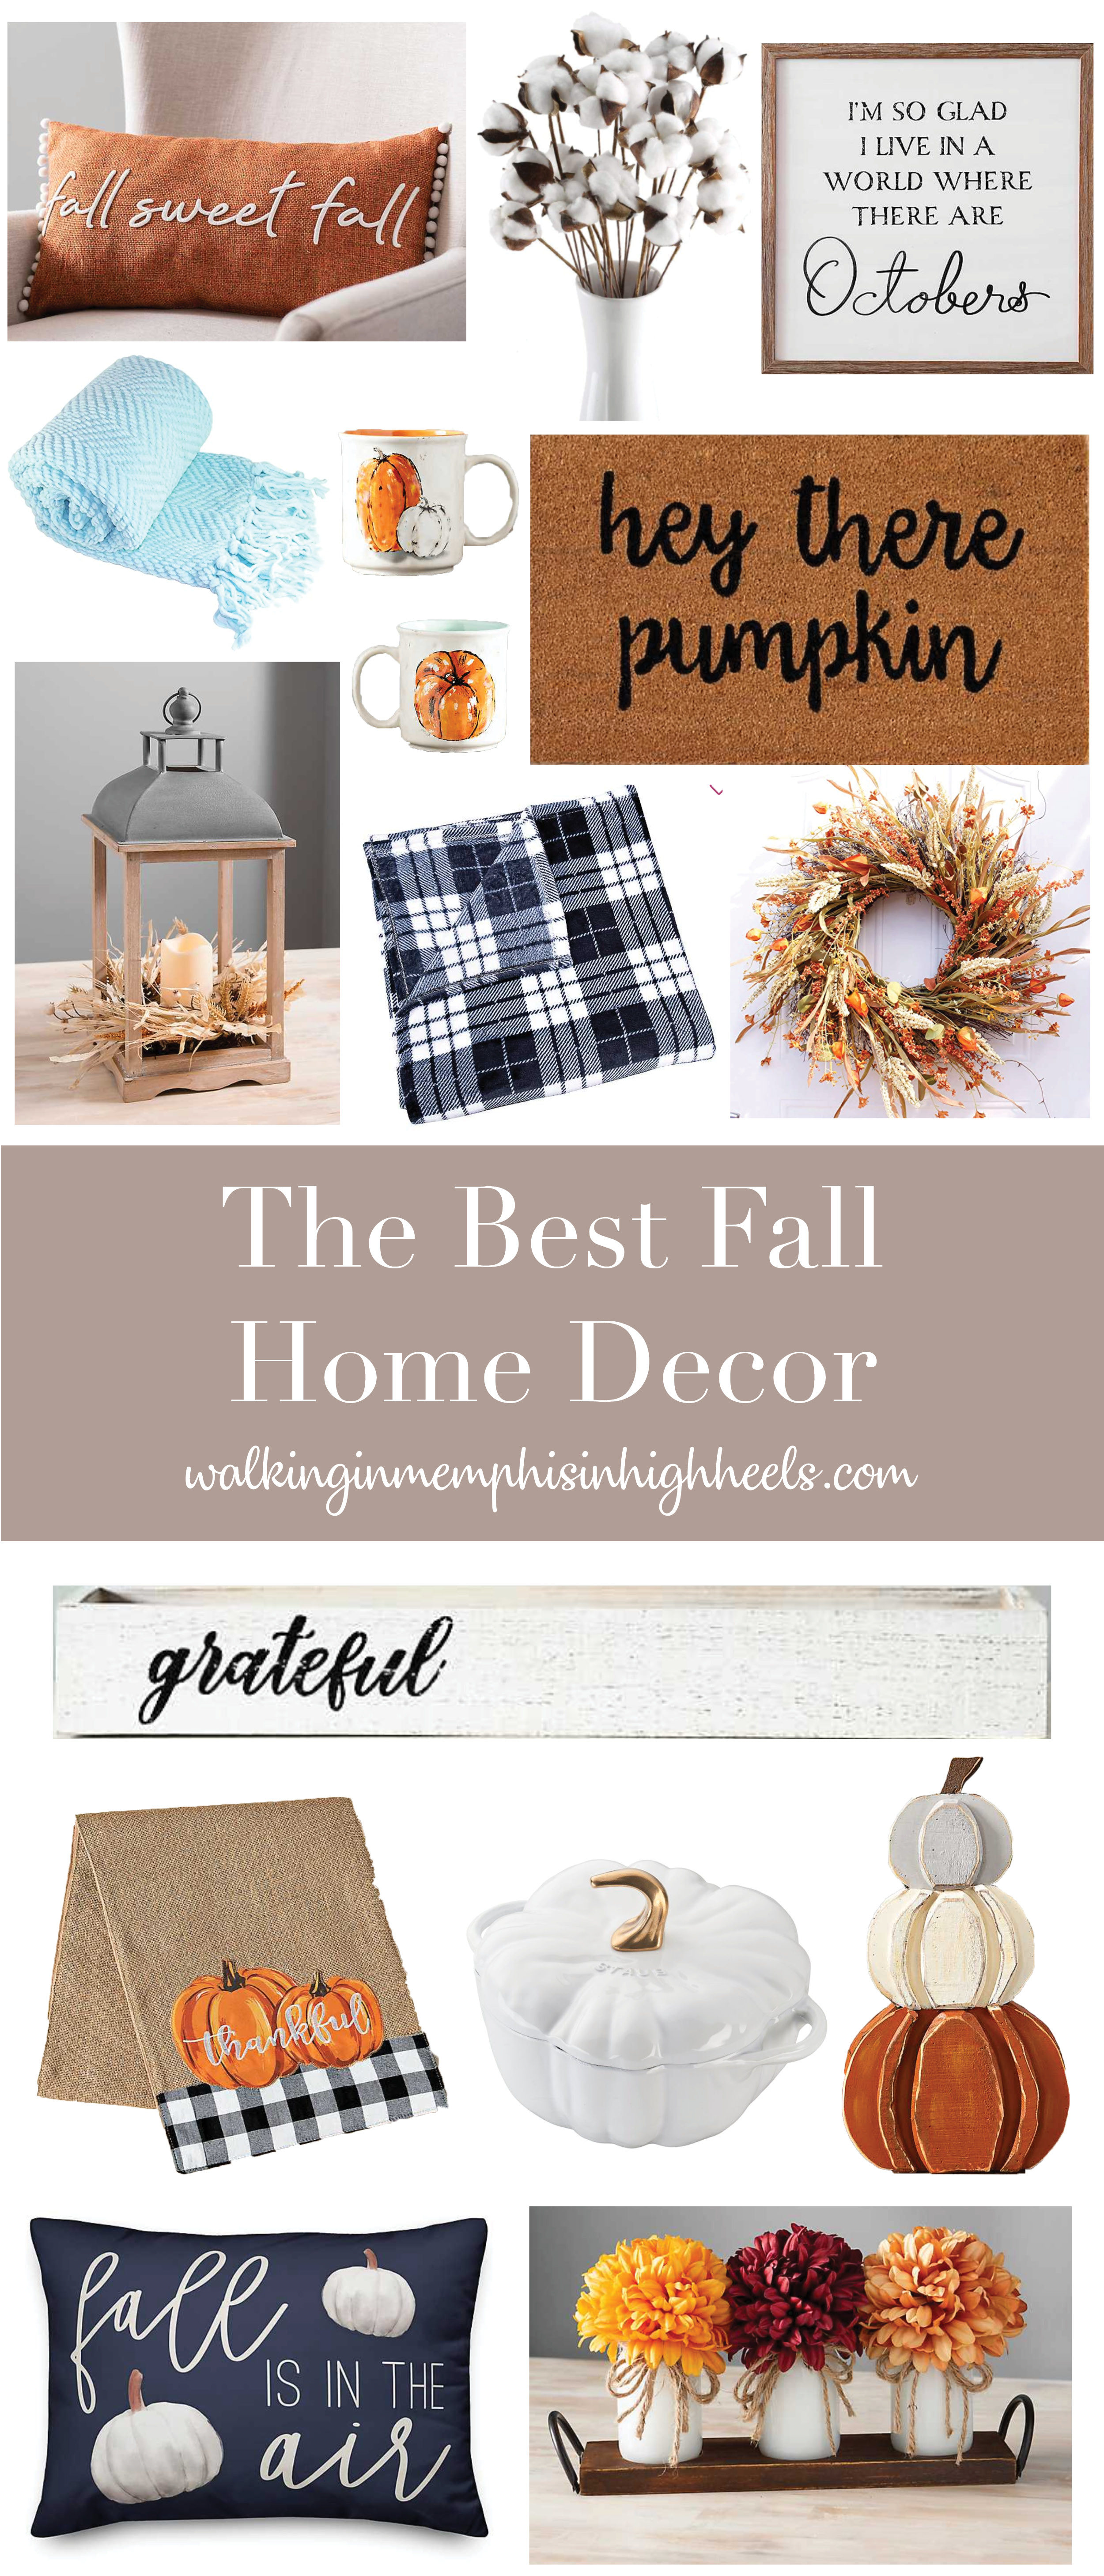 The Best Fall Home Decor